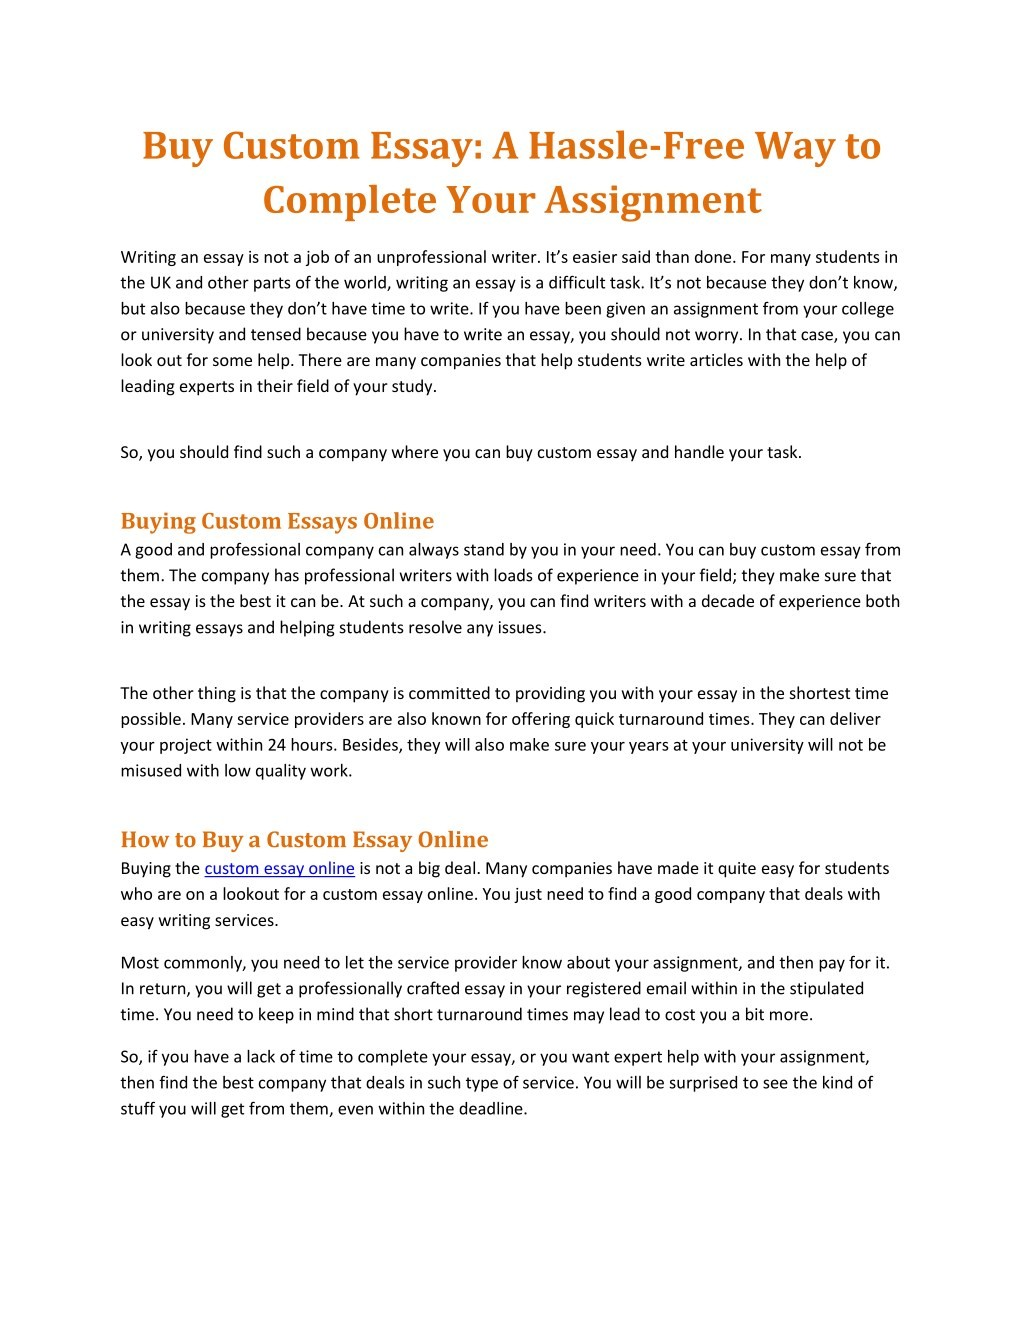 001 Buy Essays Custom Essay Hassle Free Way To Complete L Fantastic Essayshark Account Online No Plagiarism Large